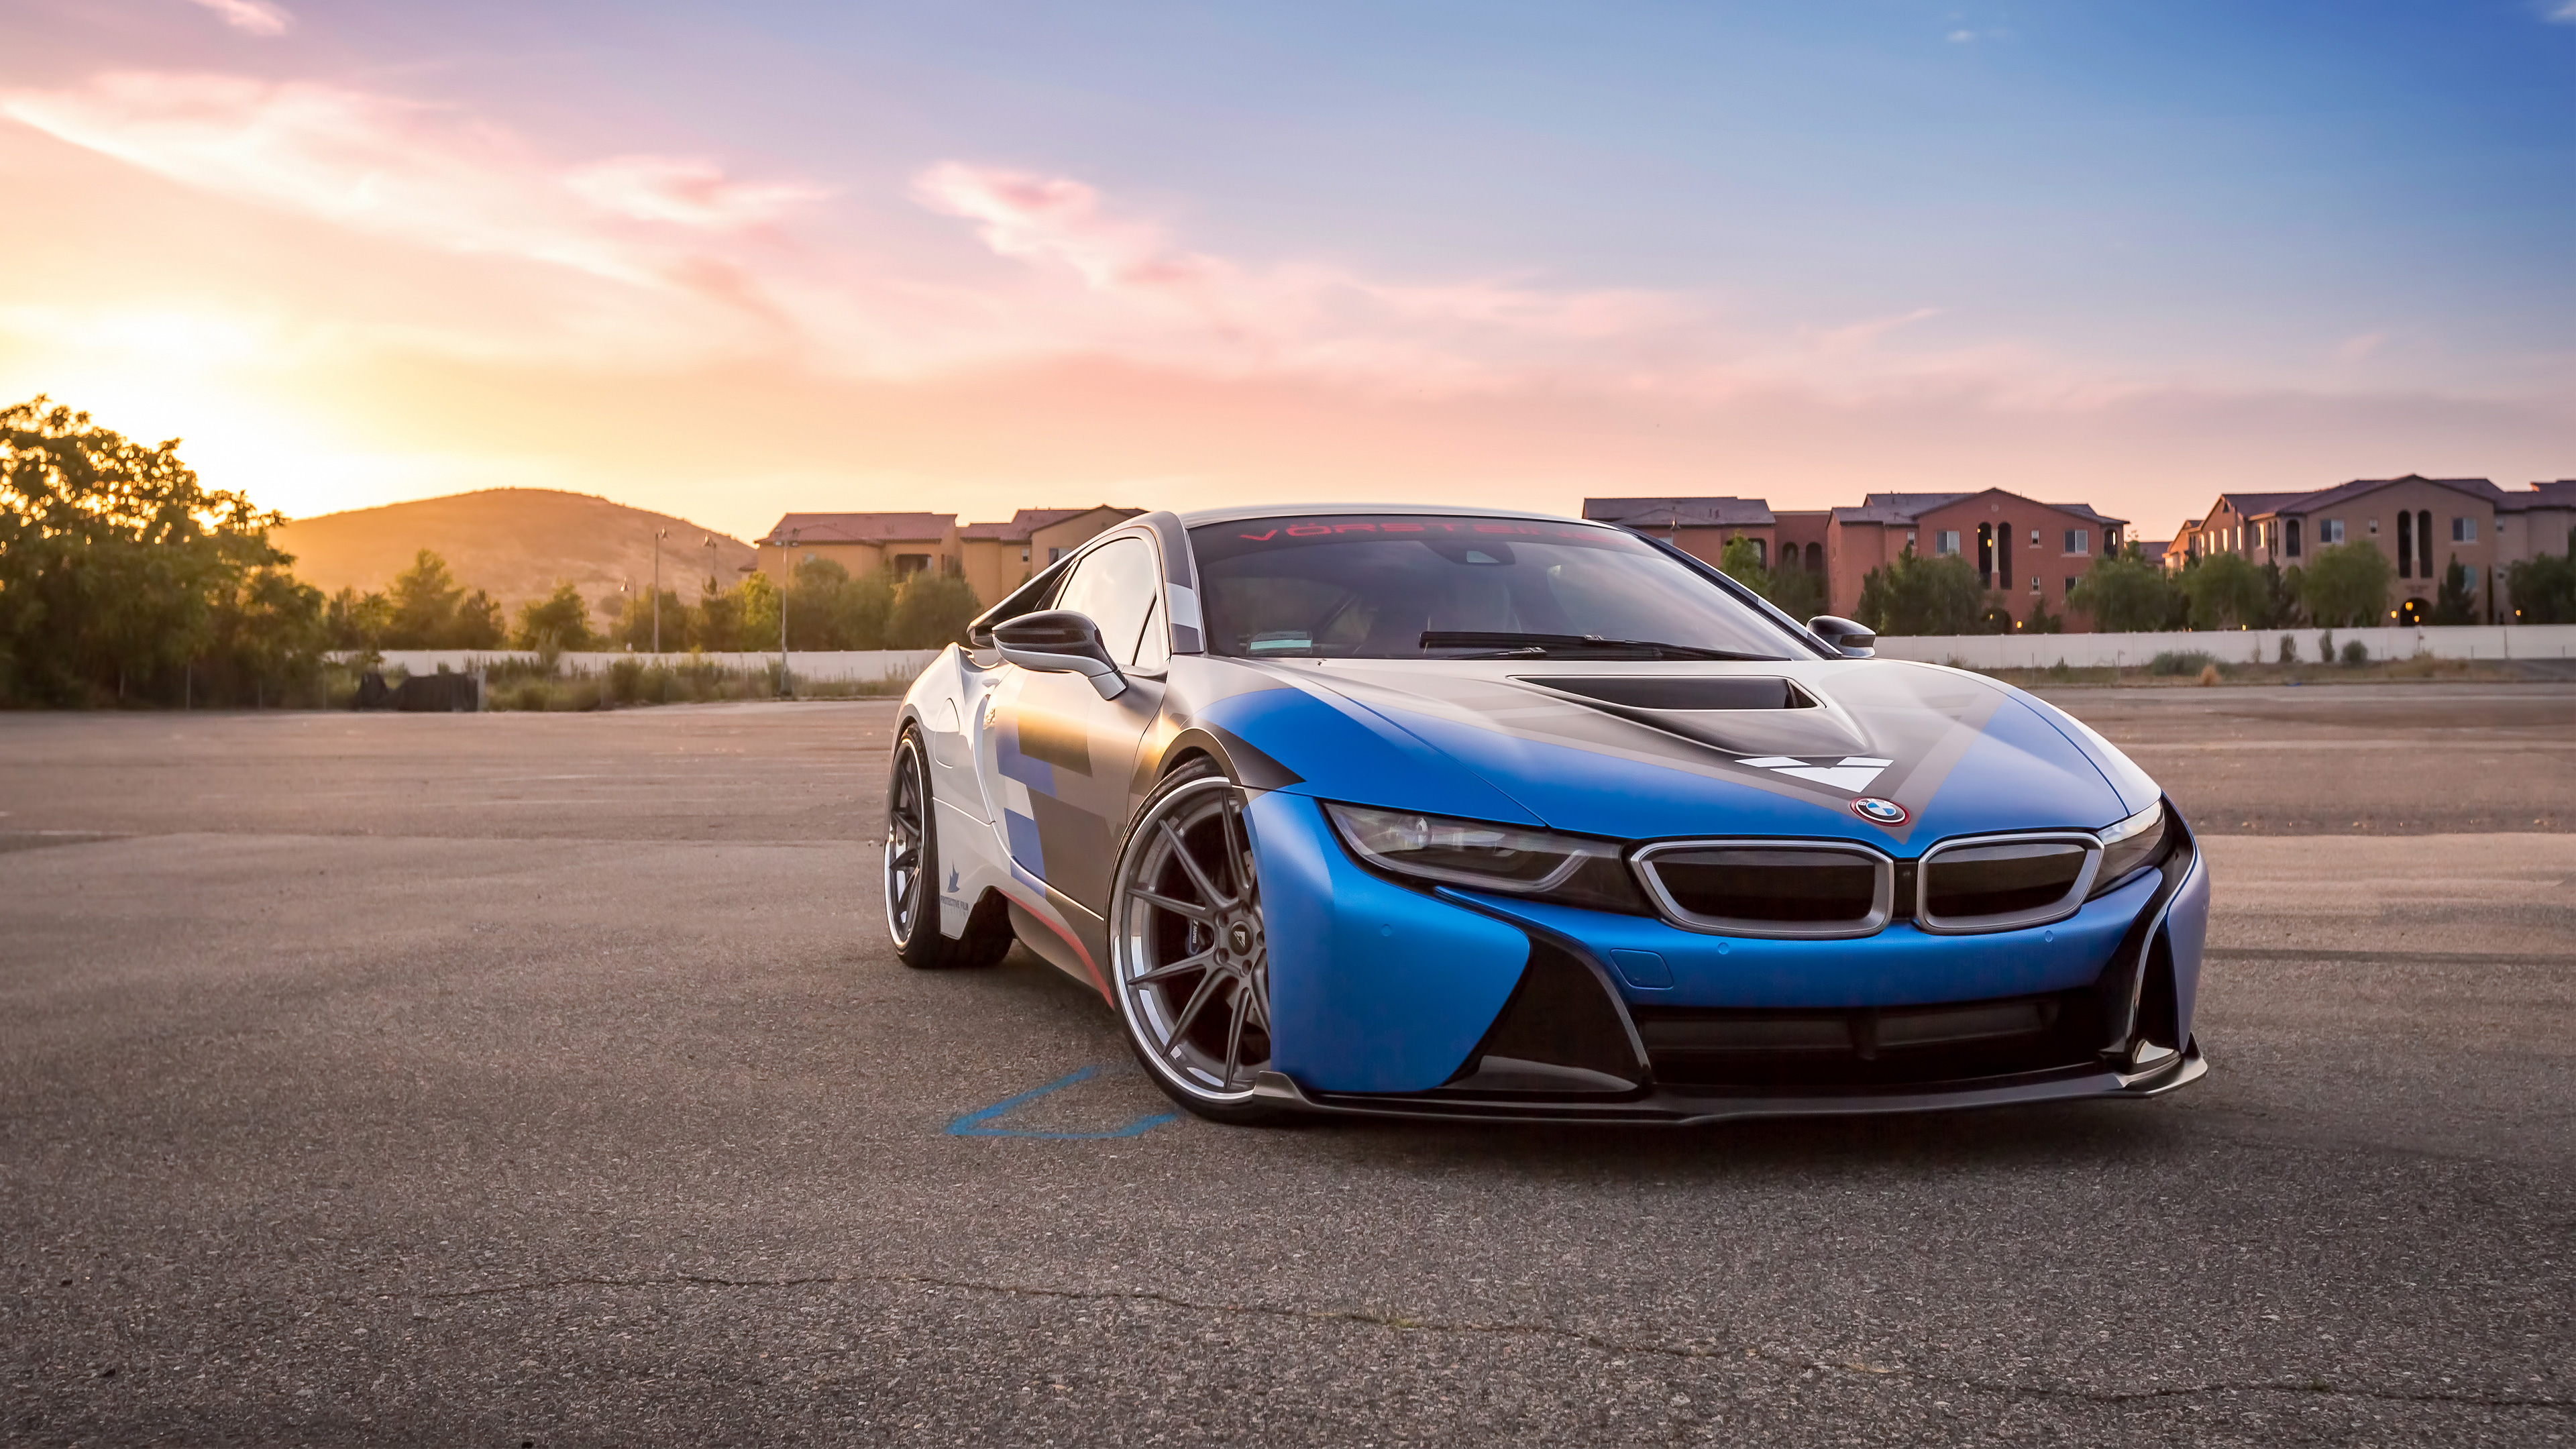 Bmw I8 Vorsteiner Hd Cars 4k Wallpapers Images Backgrounds